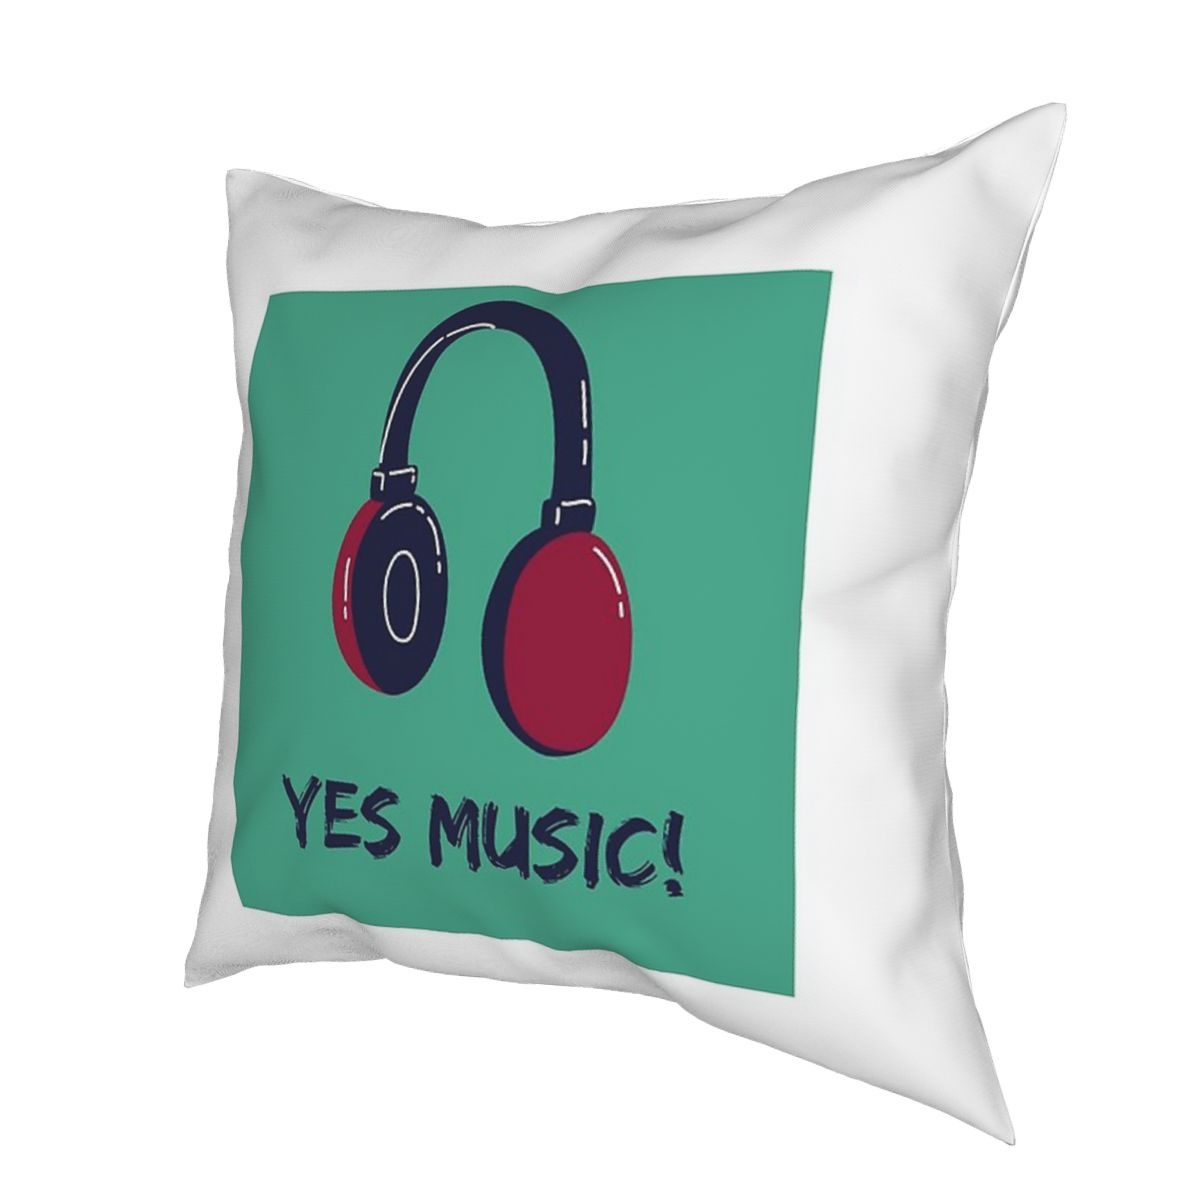 Yes Music All The Time By Mohammed Aamir Pillow Case Cover Decor Linen Cushion Cover Pillow Case Aliexpress